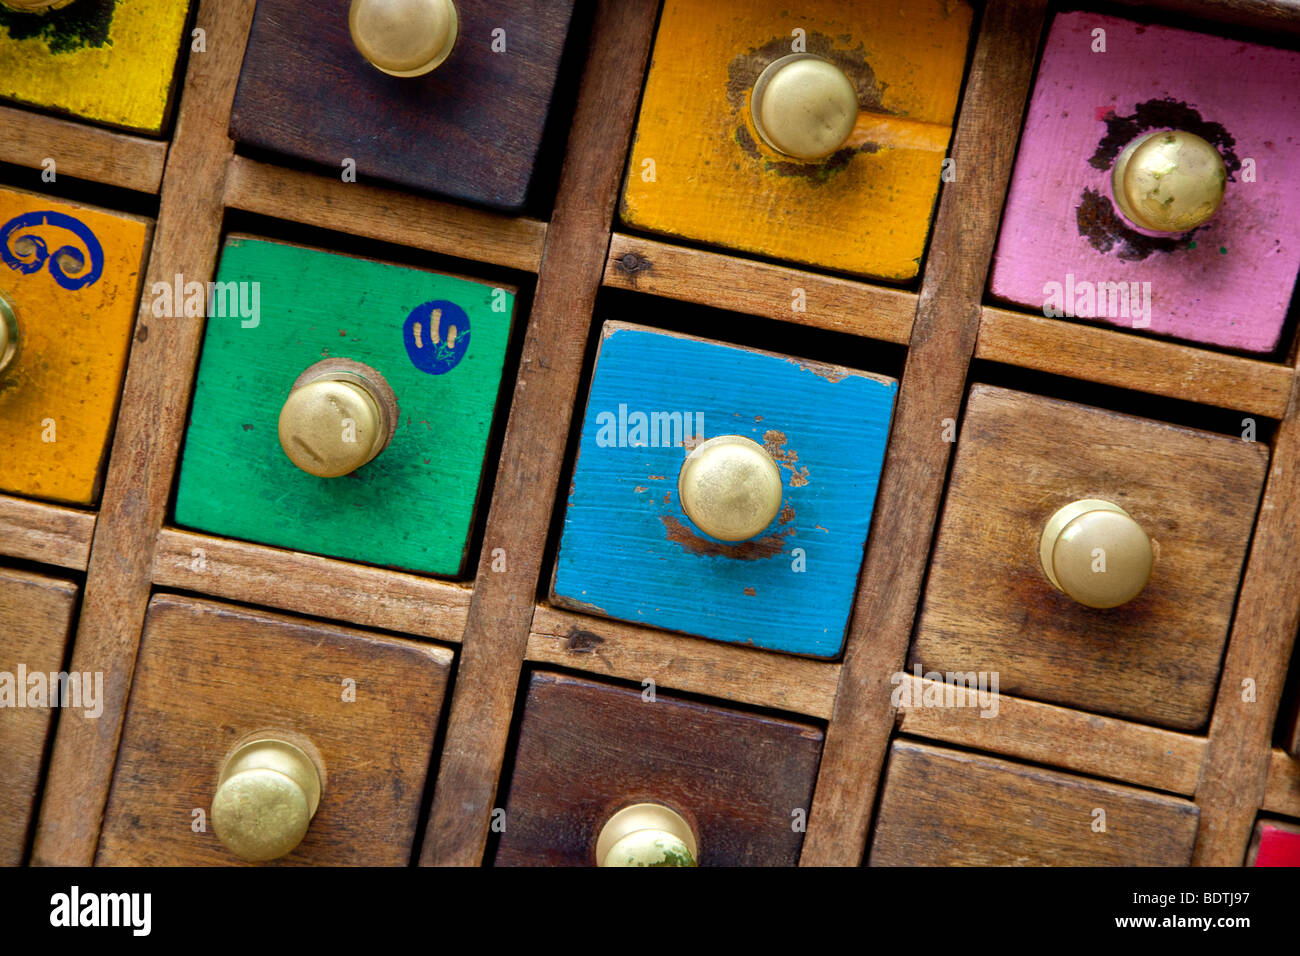 Coloured drawers The Eden Project Biome Cornwall England United Kingdom UK - Stock Image